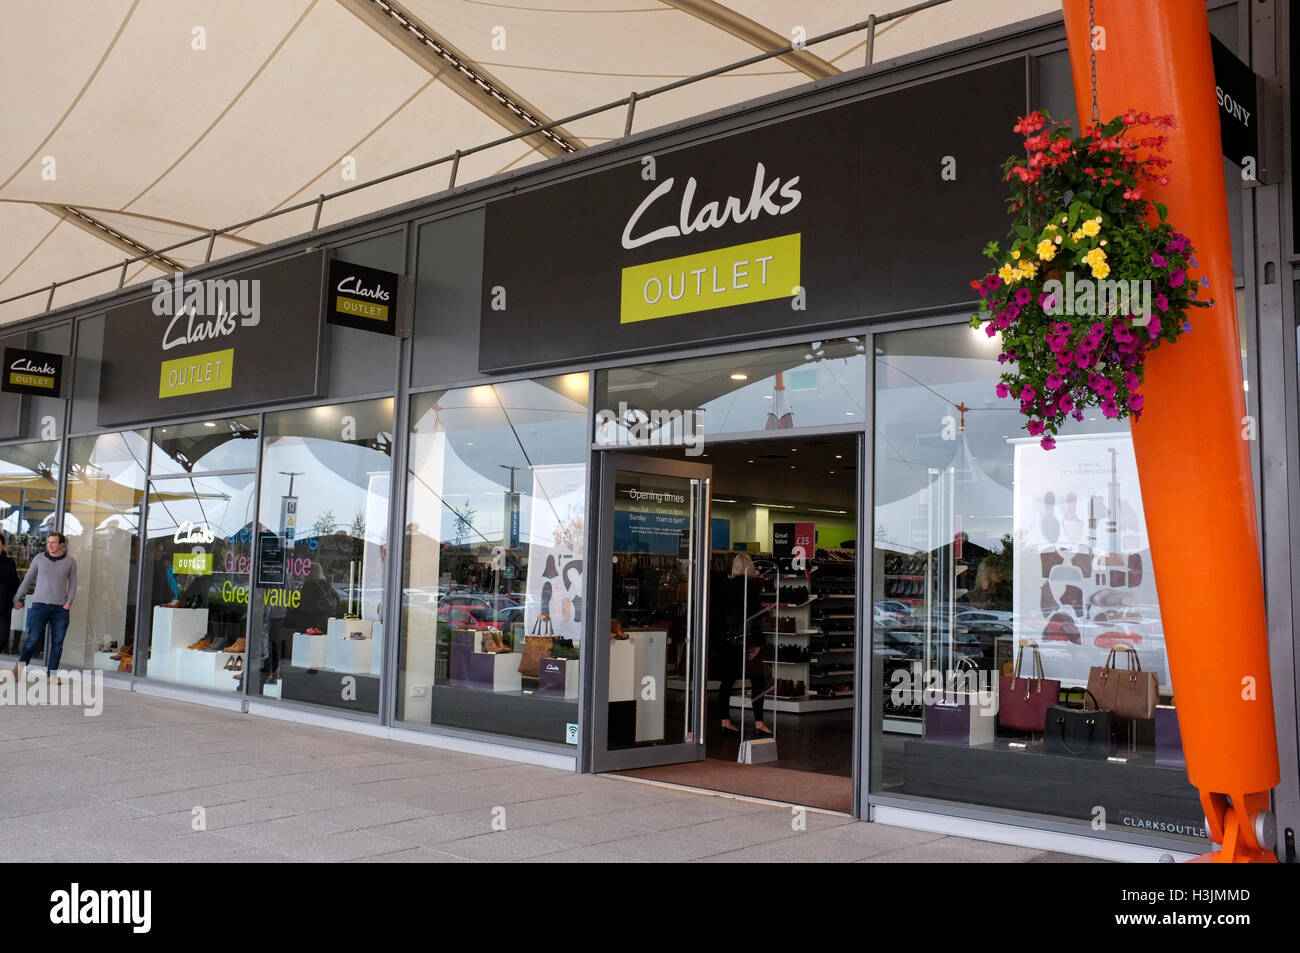 Clarks Outlet Immagini & Clarks Outlet Fotos Stock Alamy